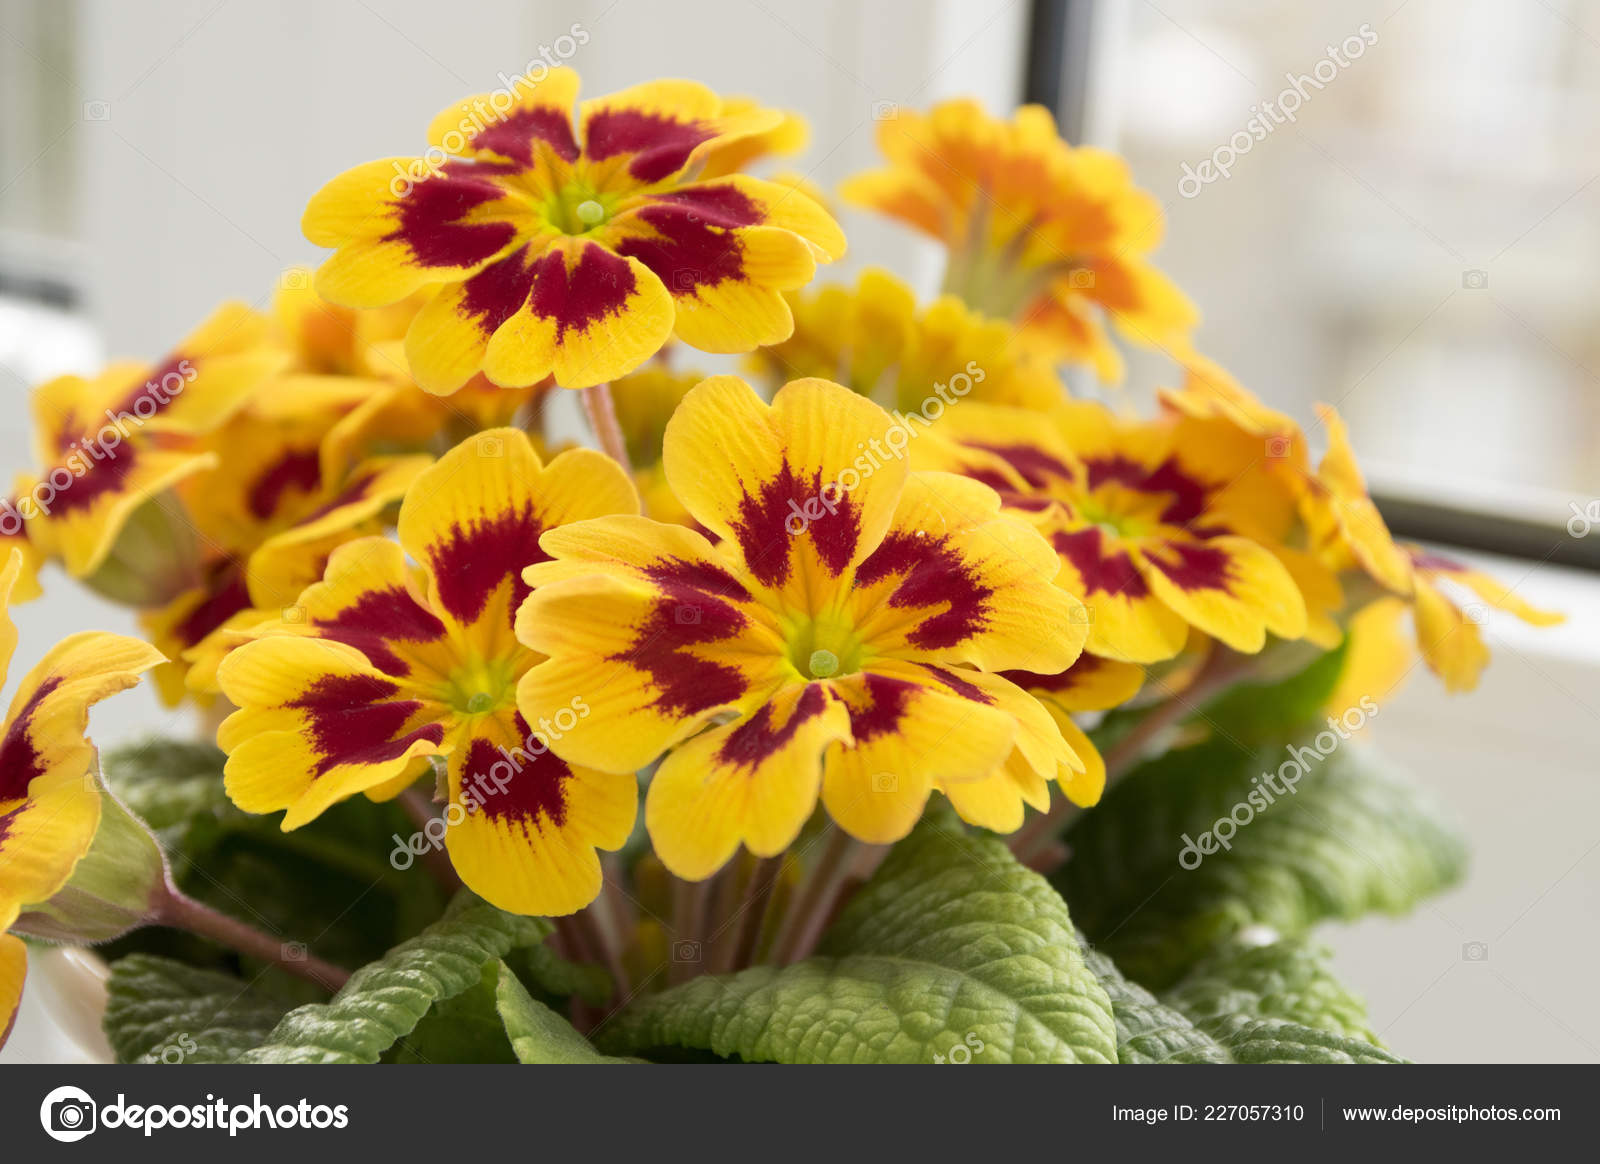 Yellow Red Primula Hortensis Primoses Early Spring Flowers